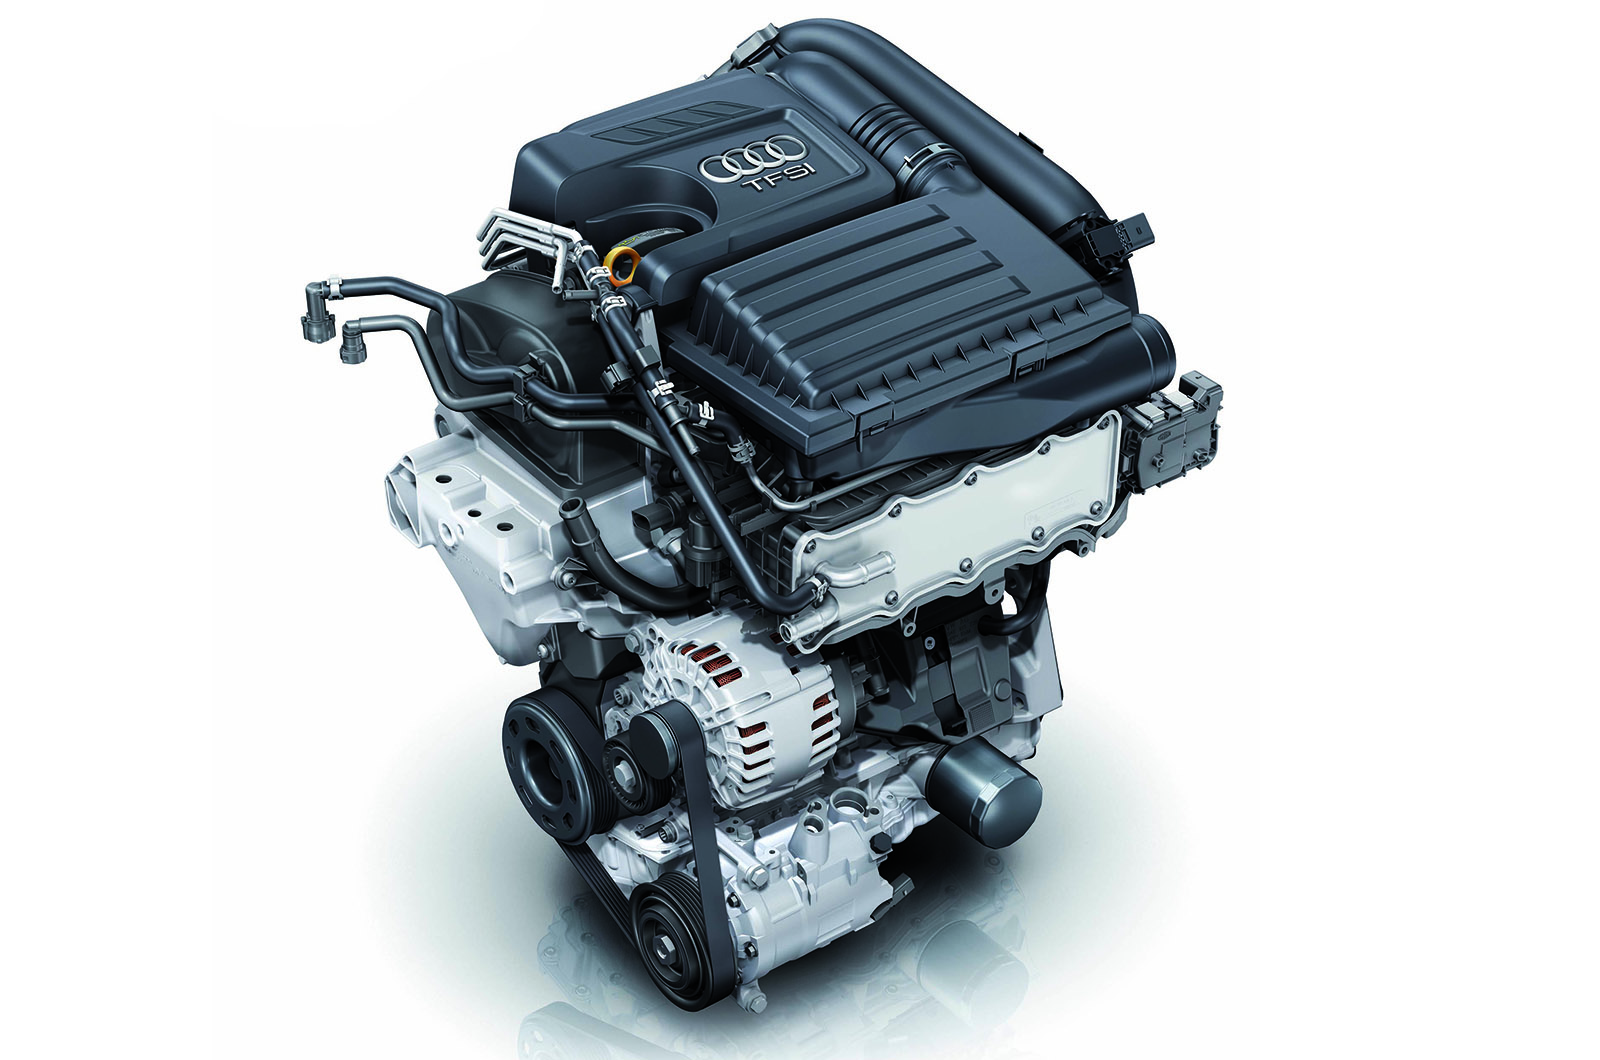 Volkswagen Group readies revolutionary new petrol engine